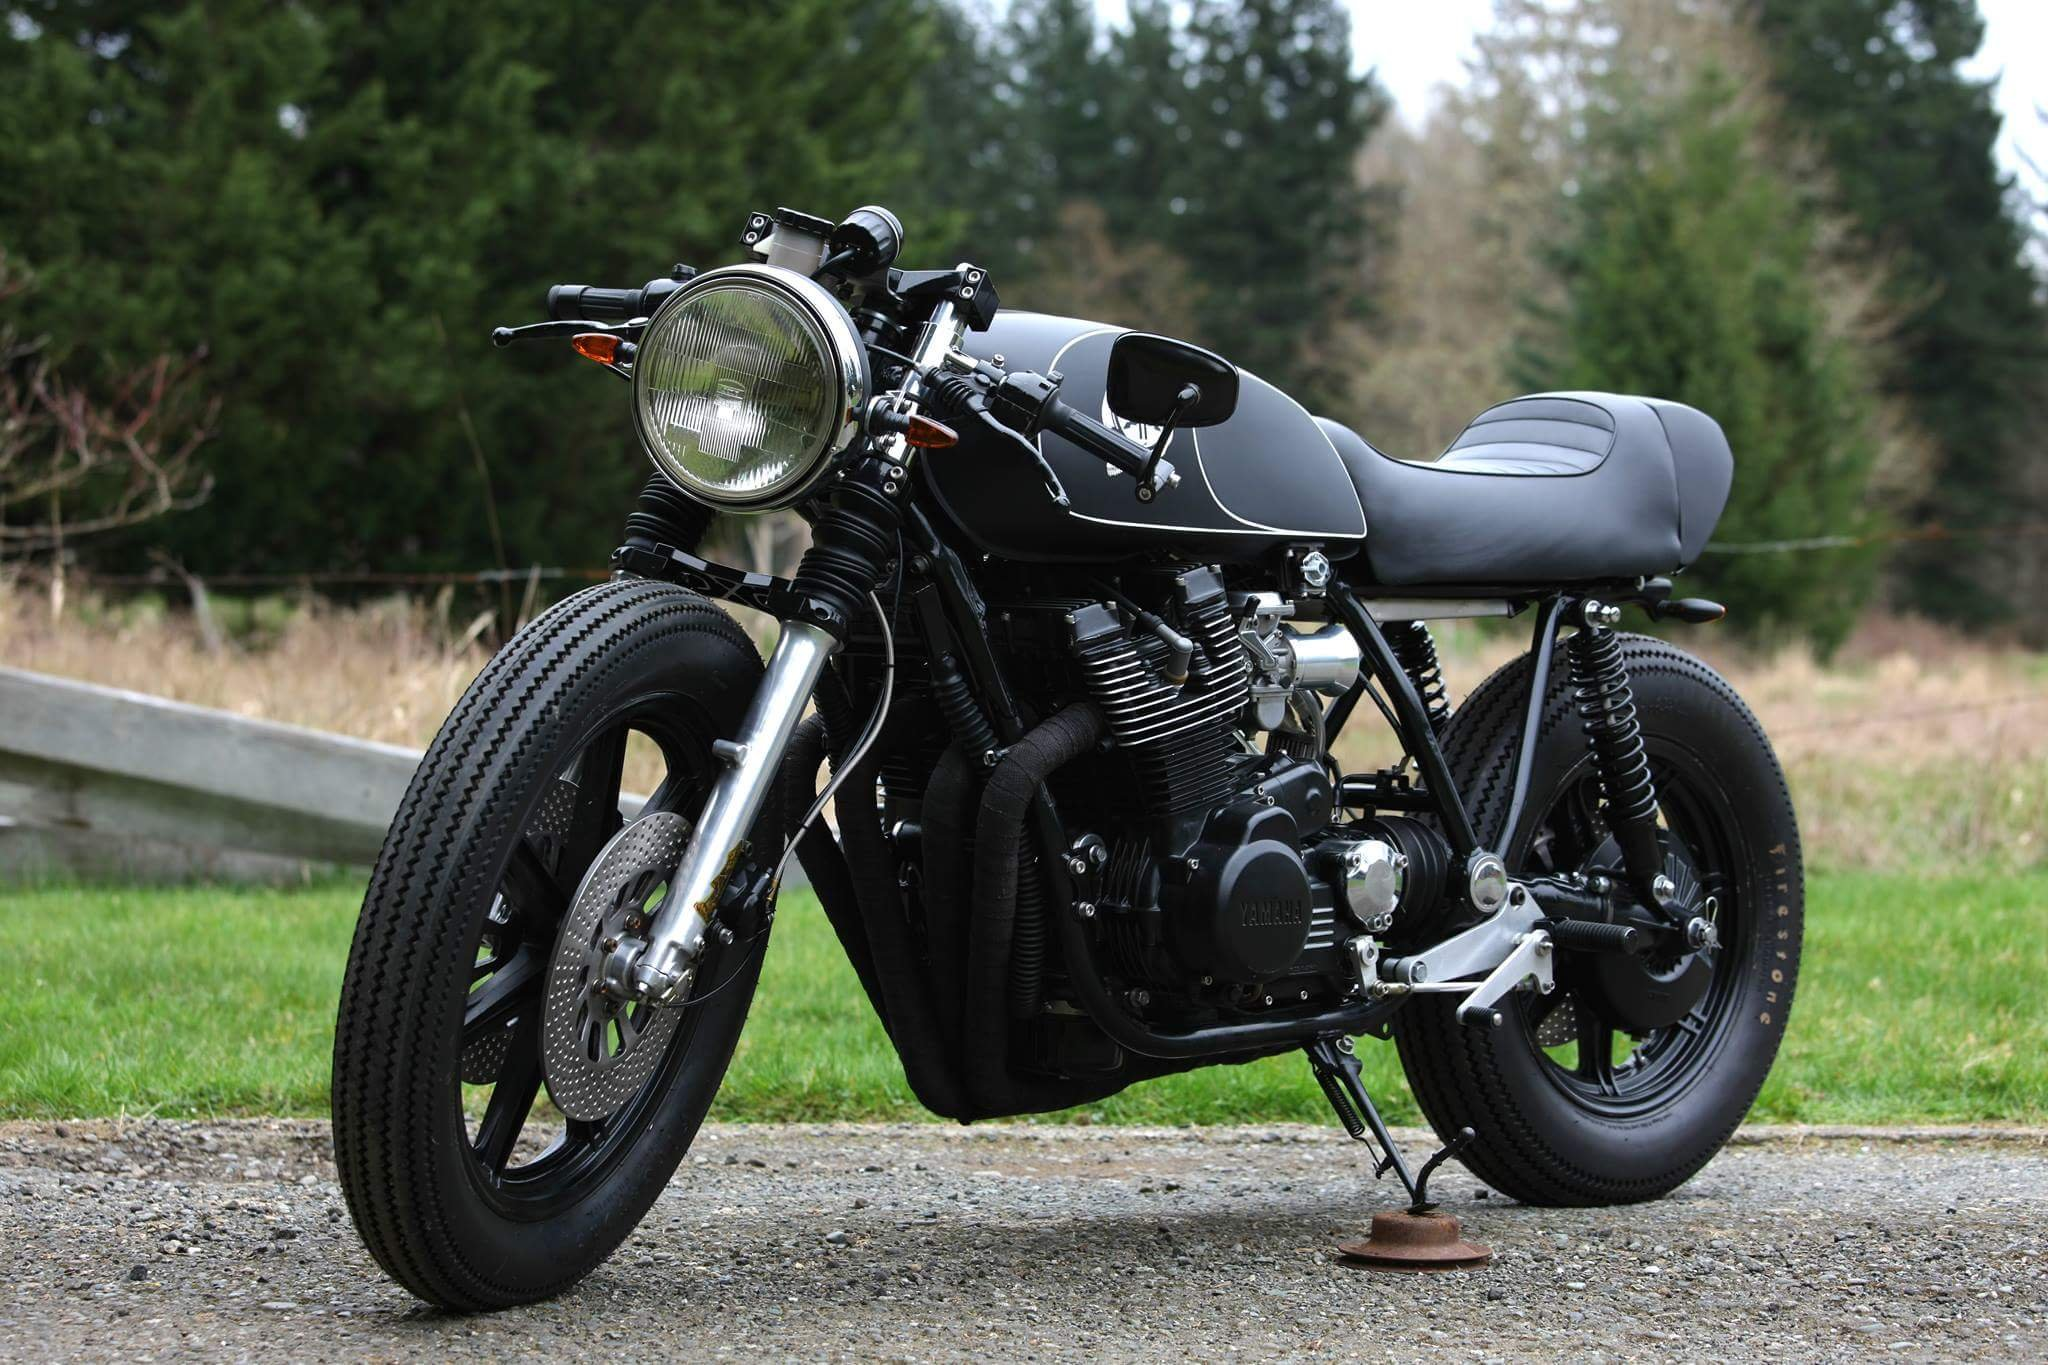 "Two decades and more after its launch, maybe the XS1100's time has finally come."" XS1100 Cafe Racer"